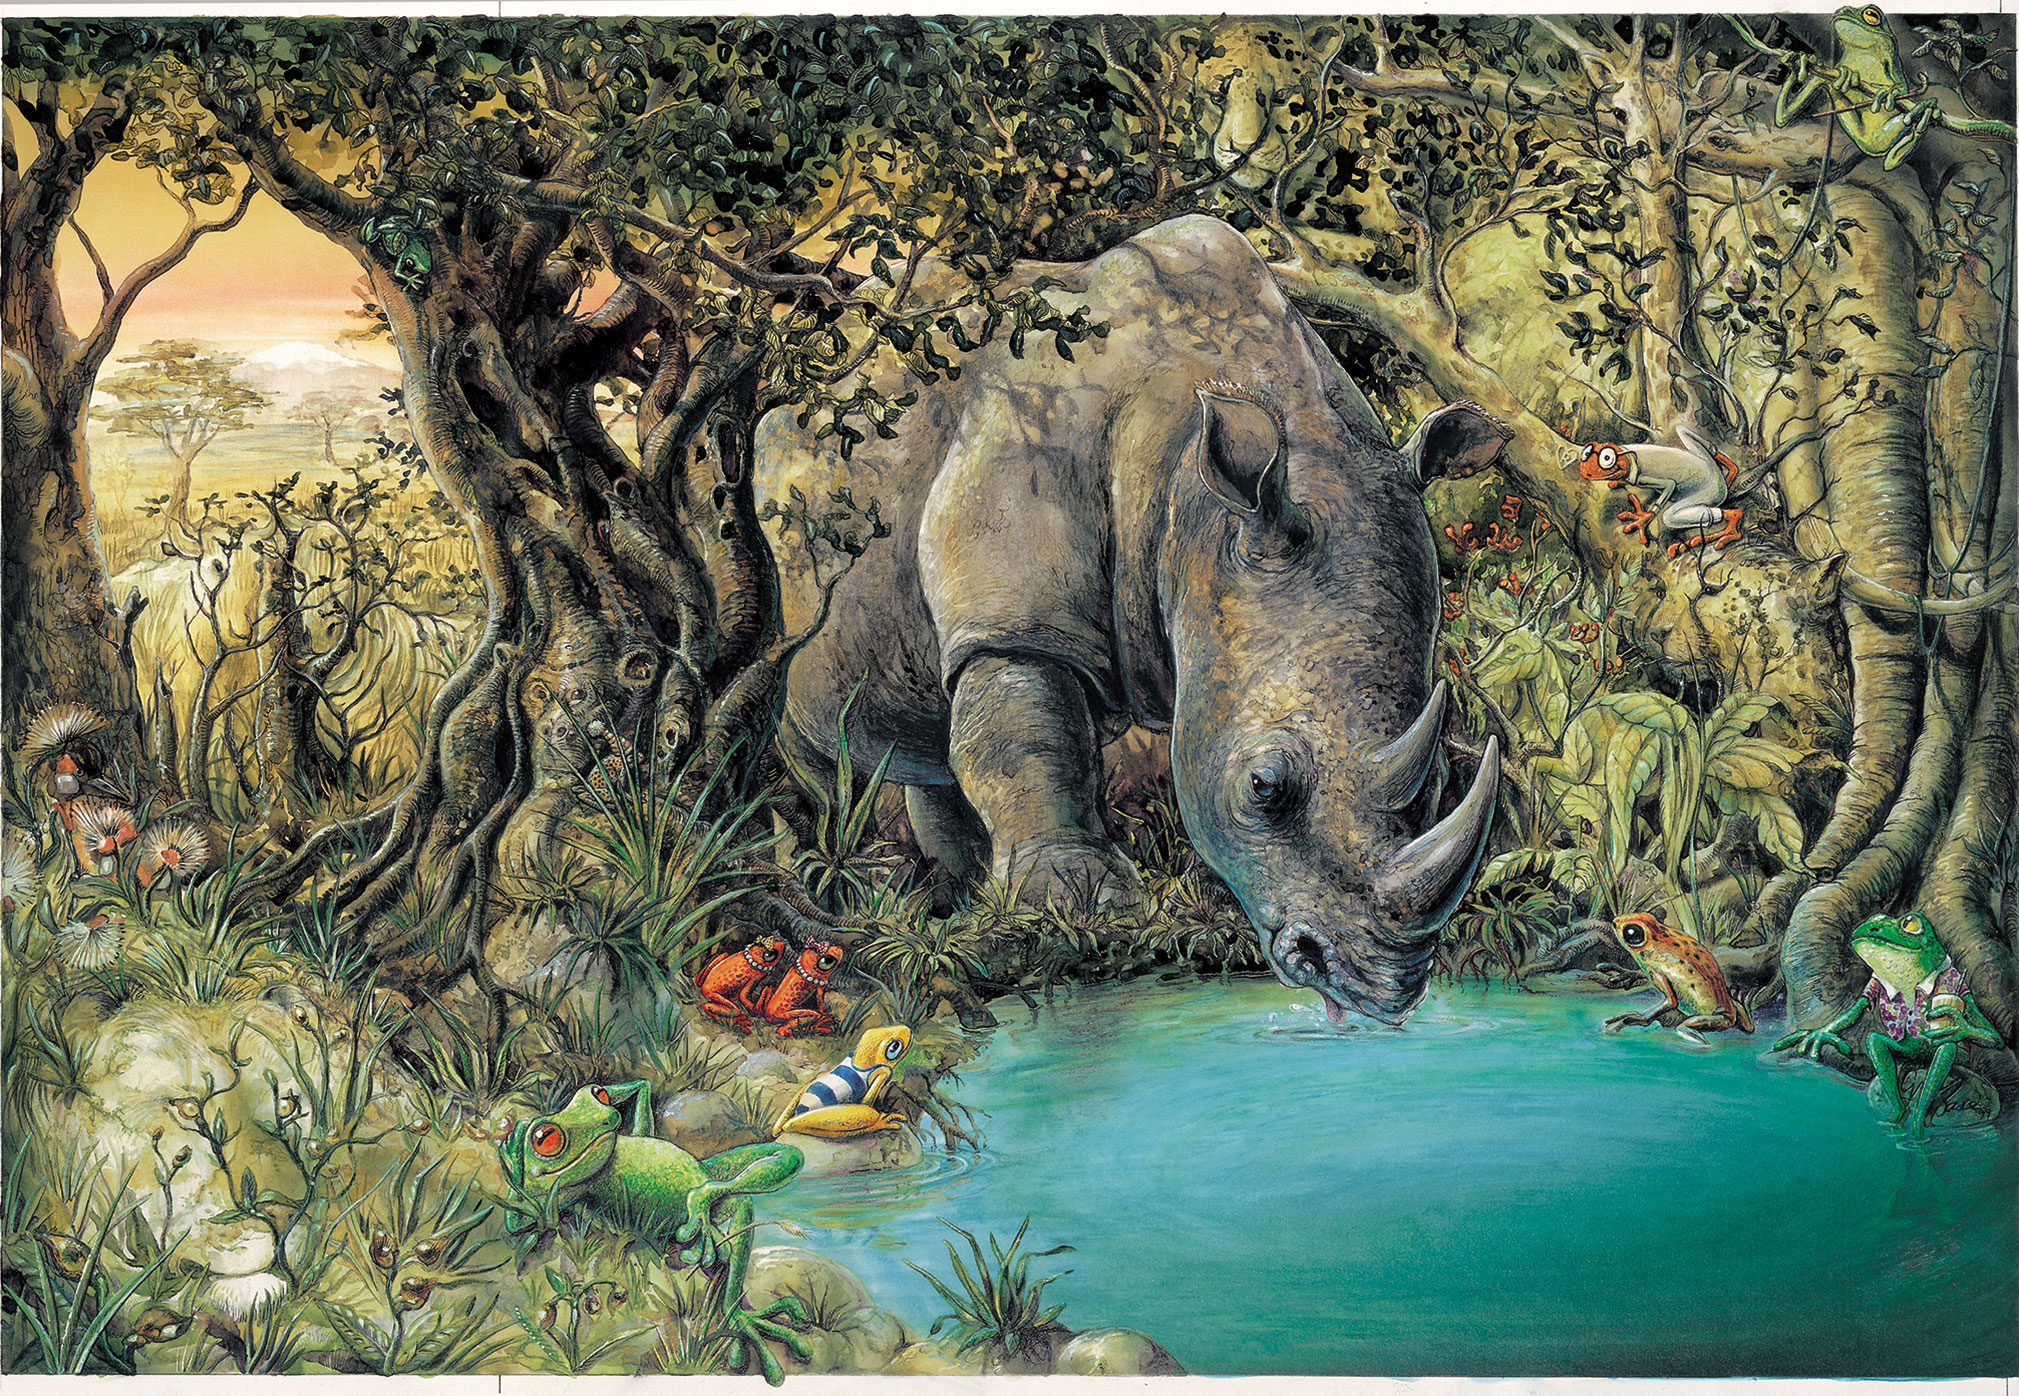 One Rhino Drinking at the Water Hole | Graeme Base